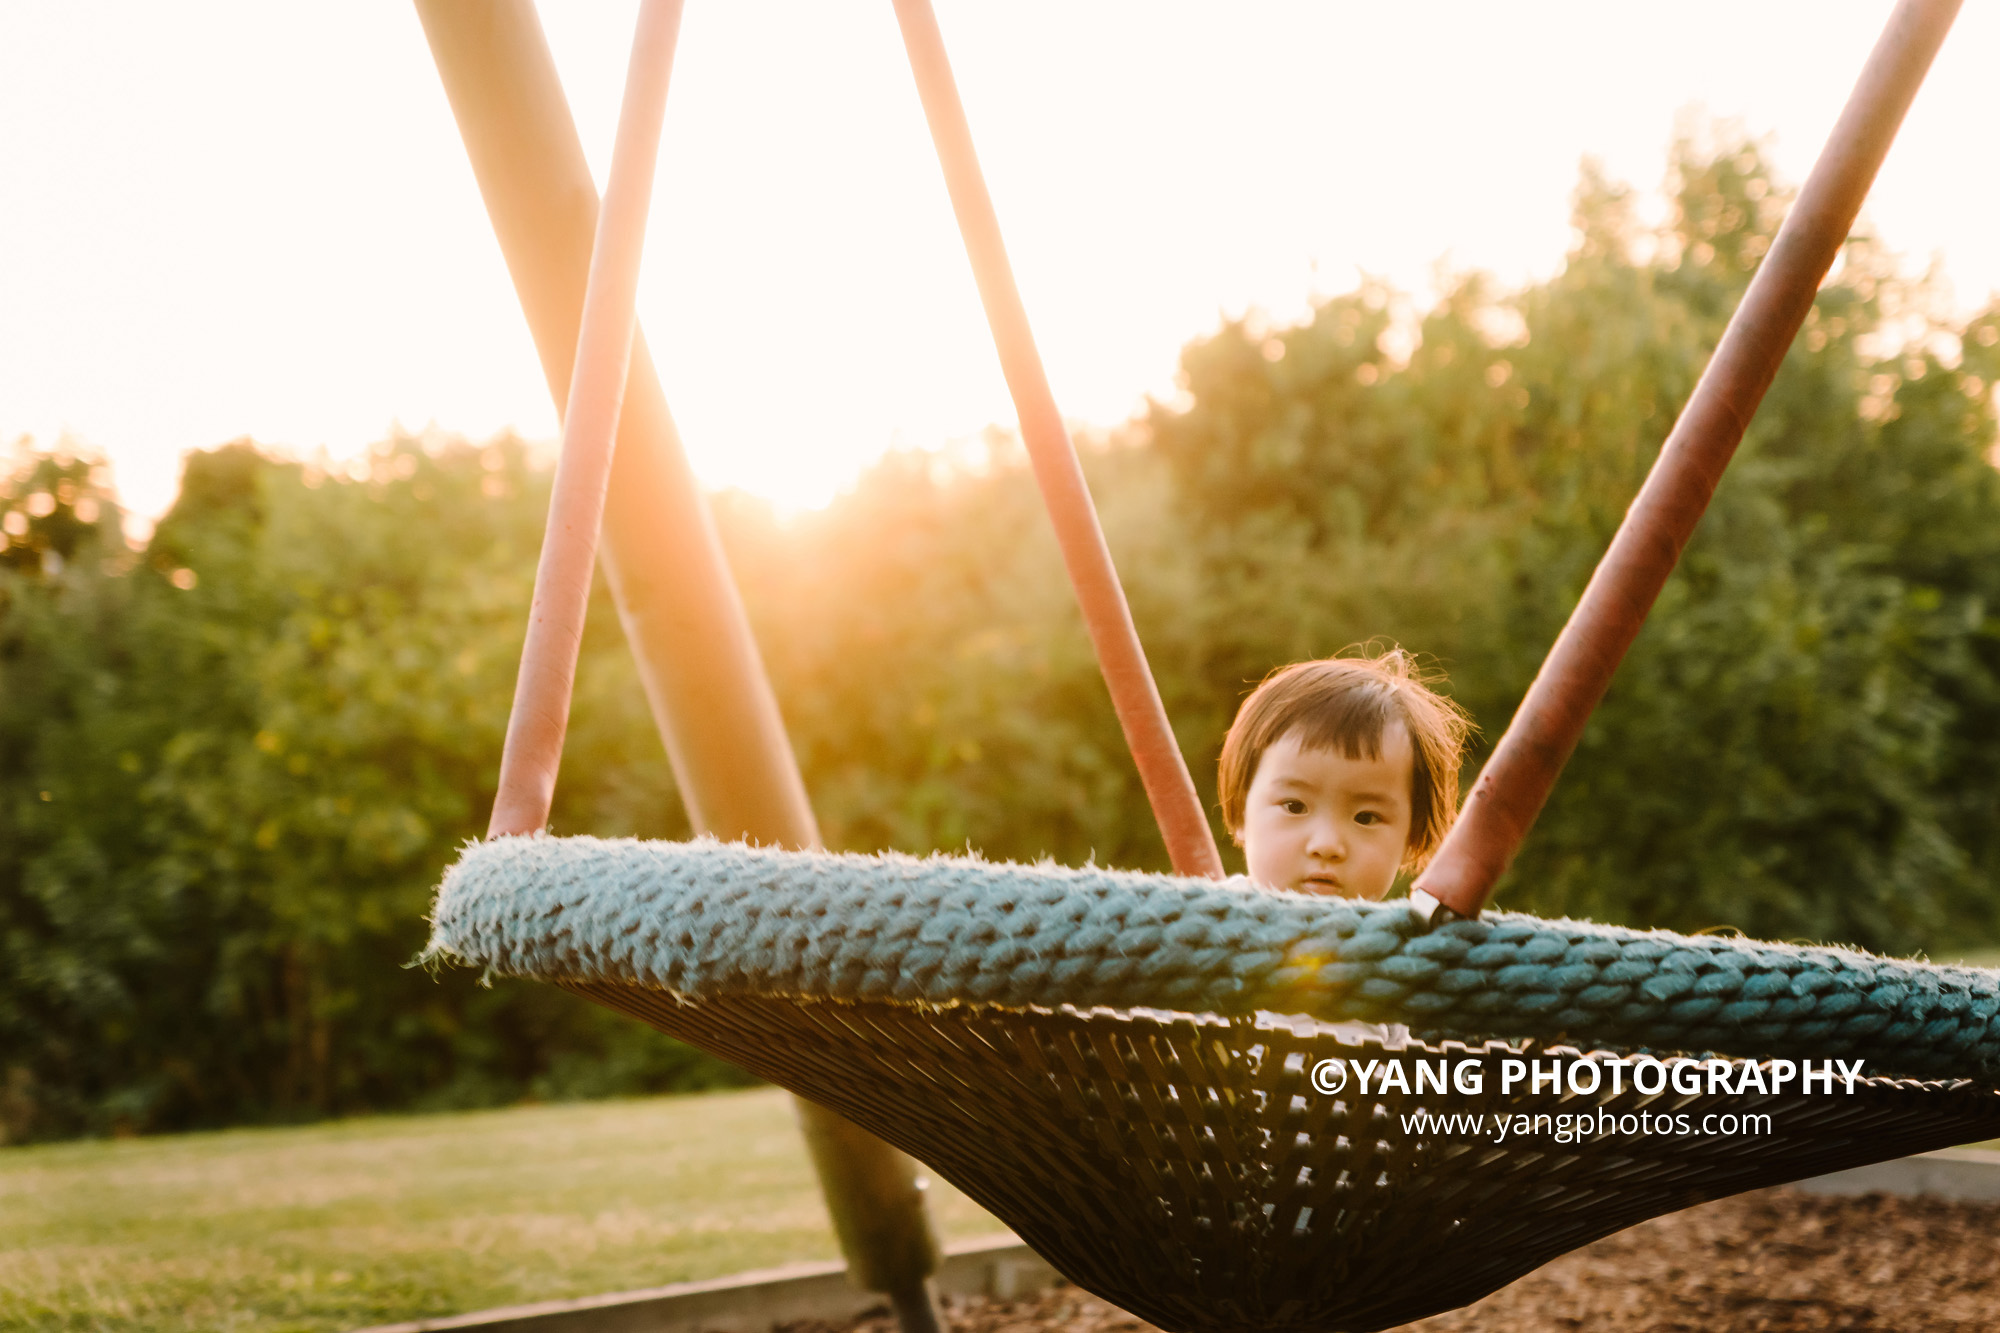 Let's-swing-in-the-sunshine-dodo-yangphotos